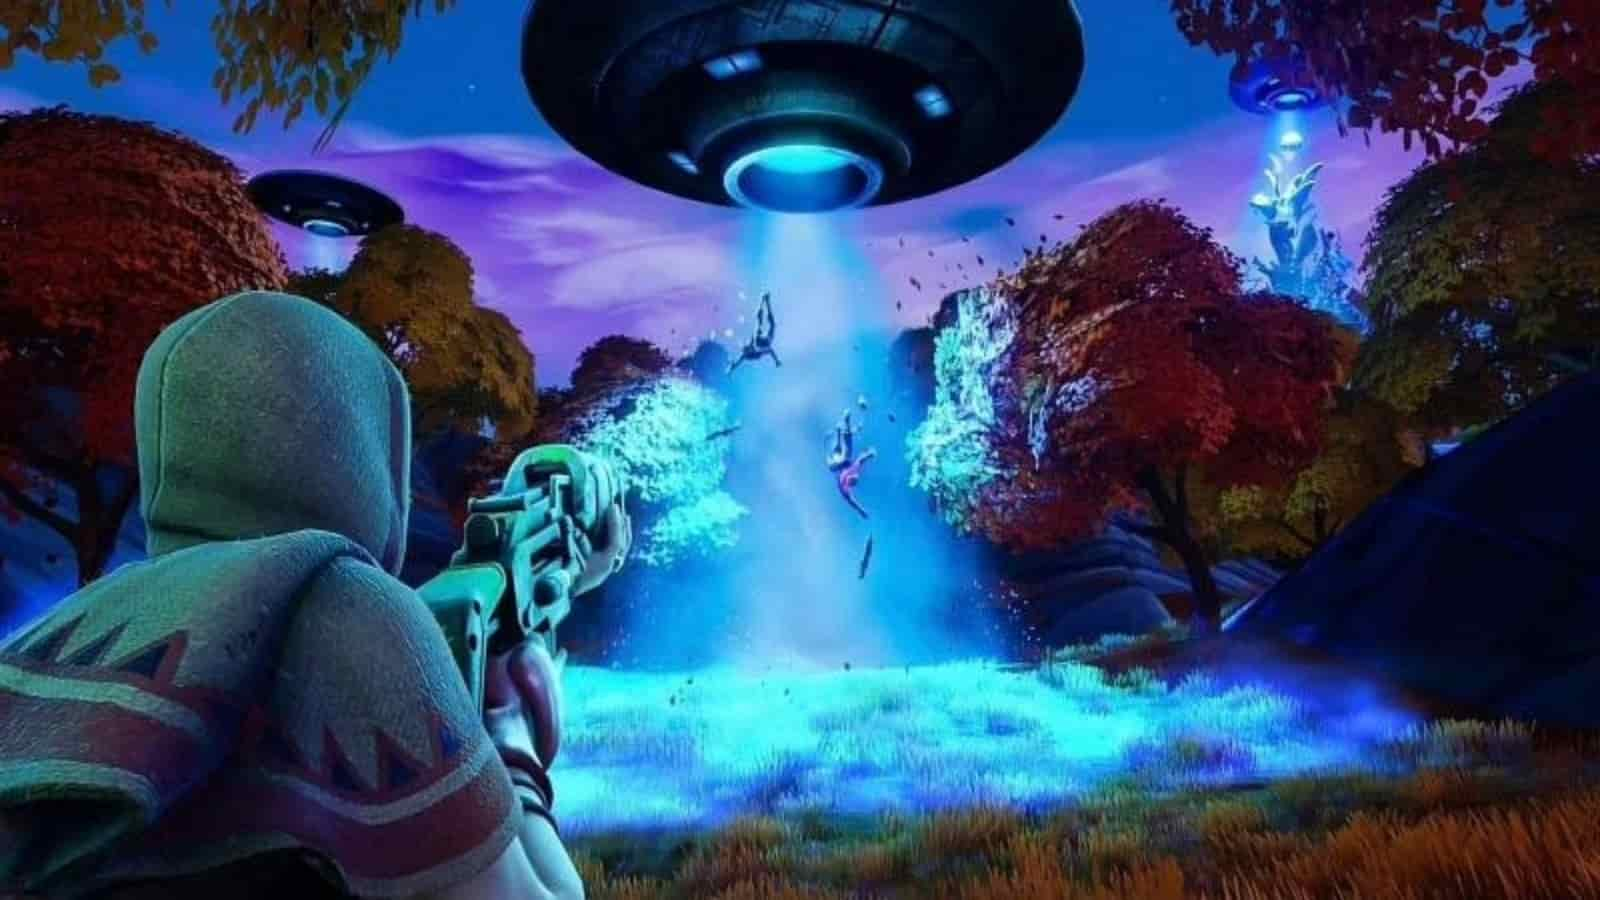 Aliens in Fortnite - Where are the Fortnite UFOs and How to Get abducted by Aliens